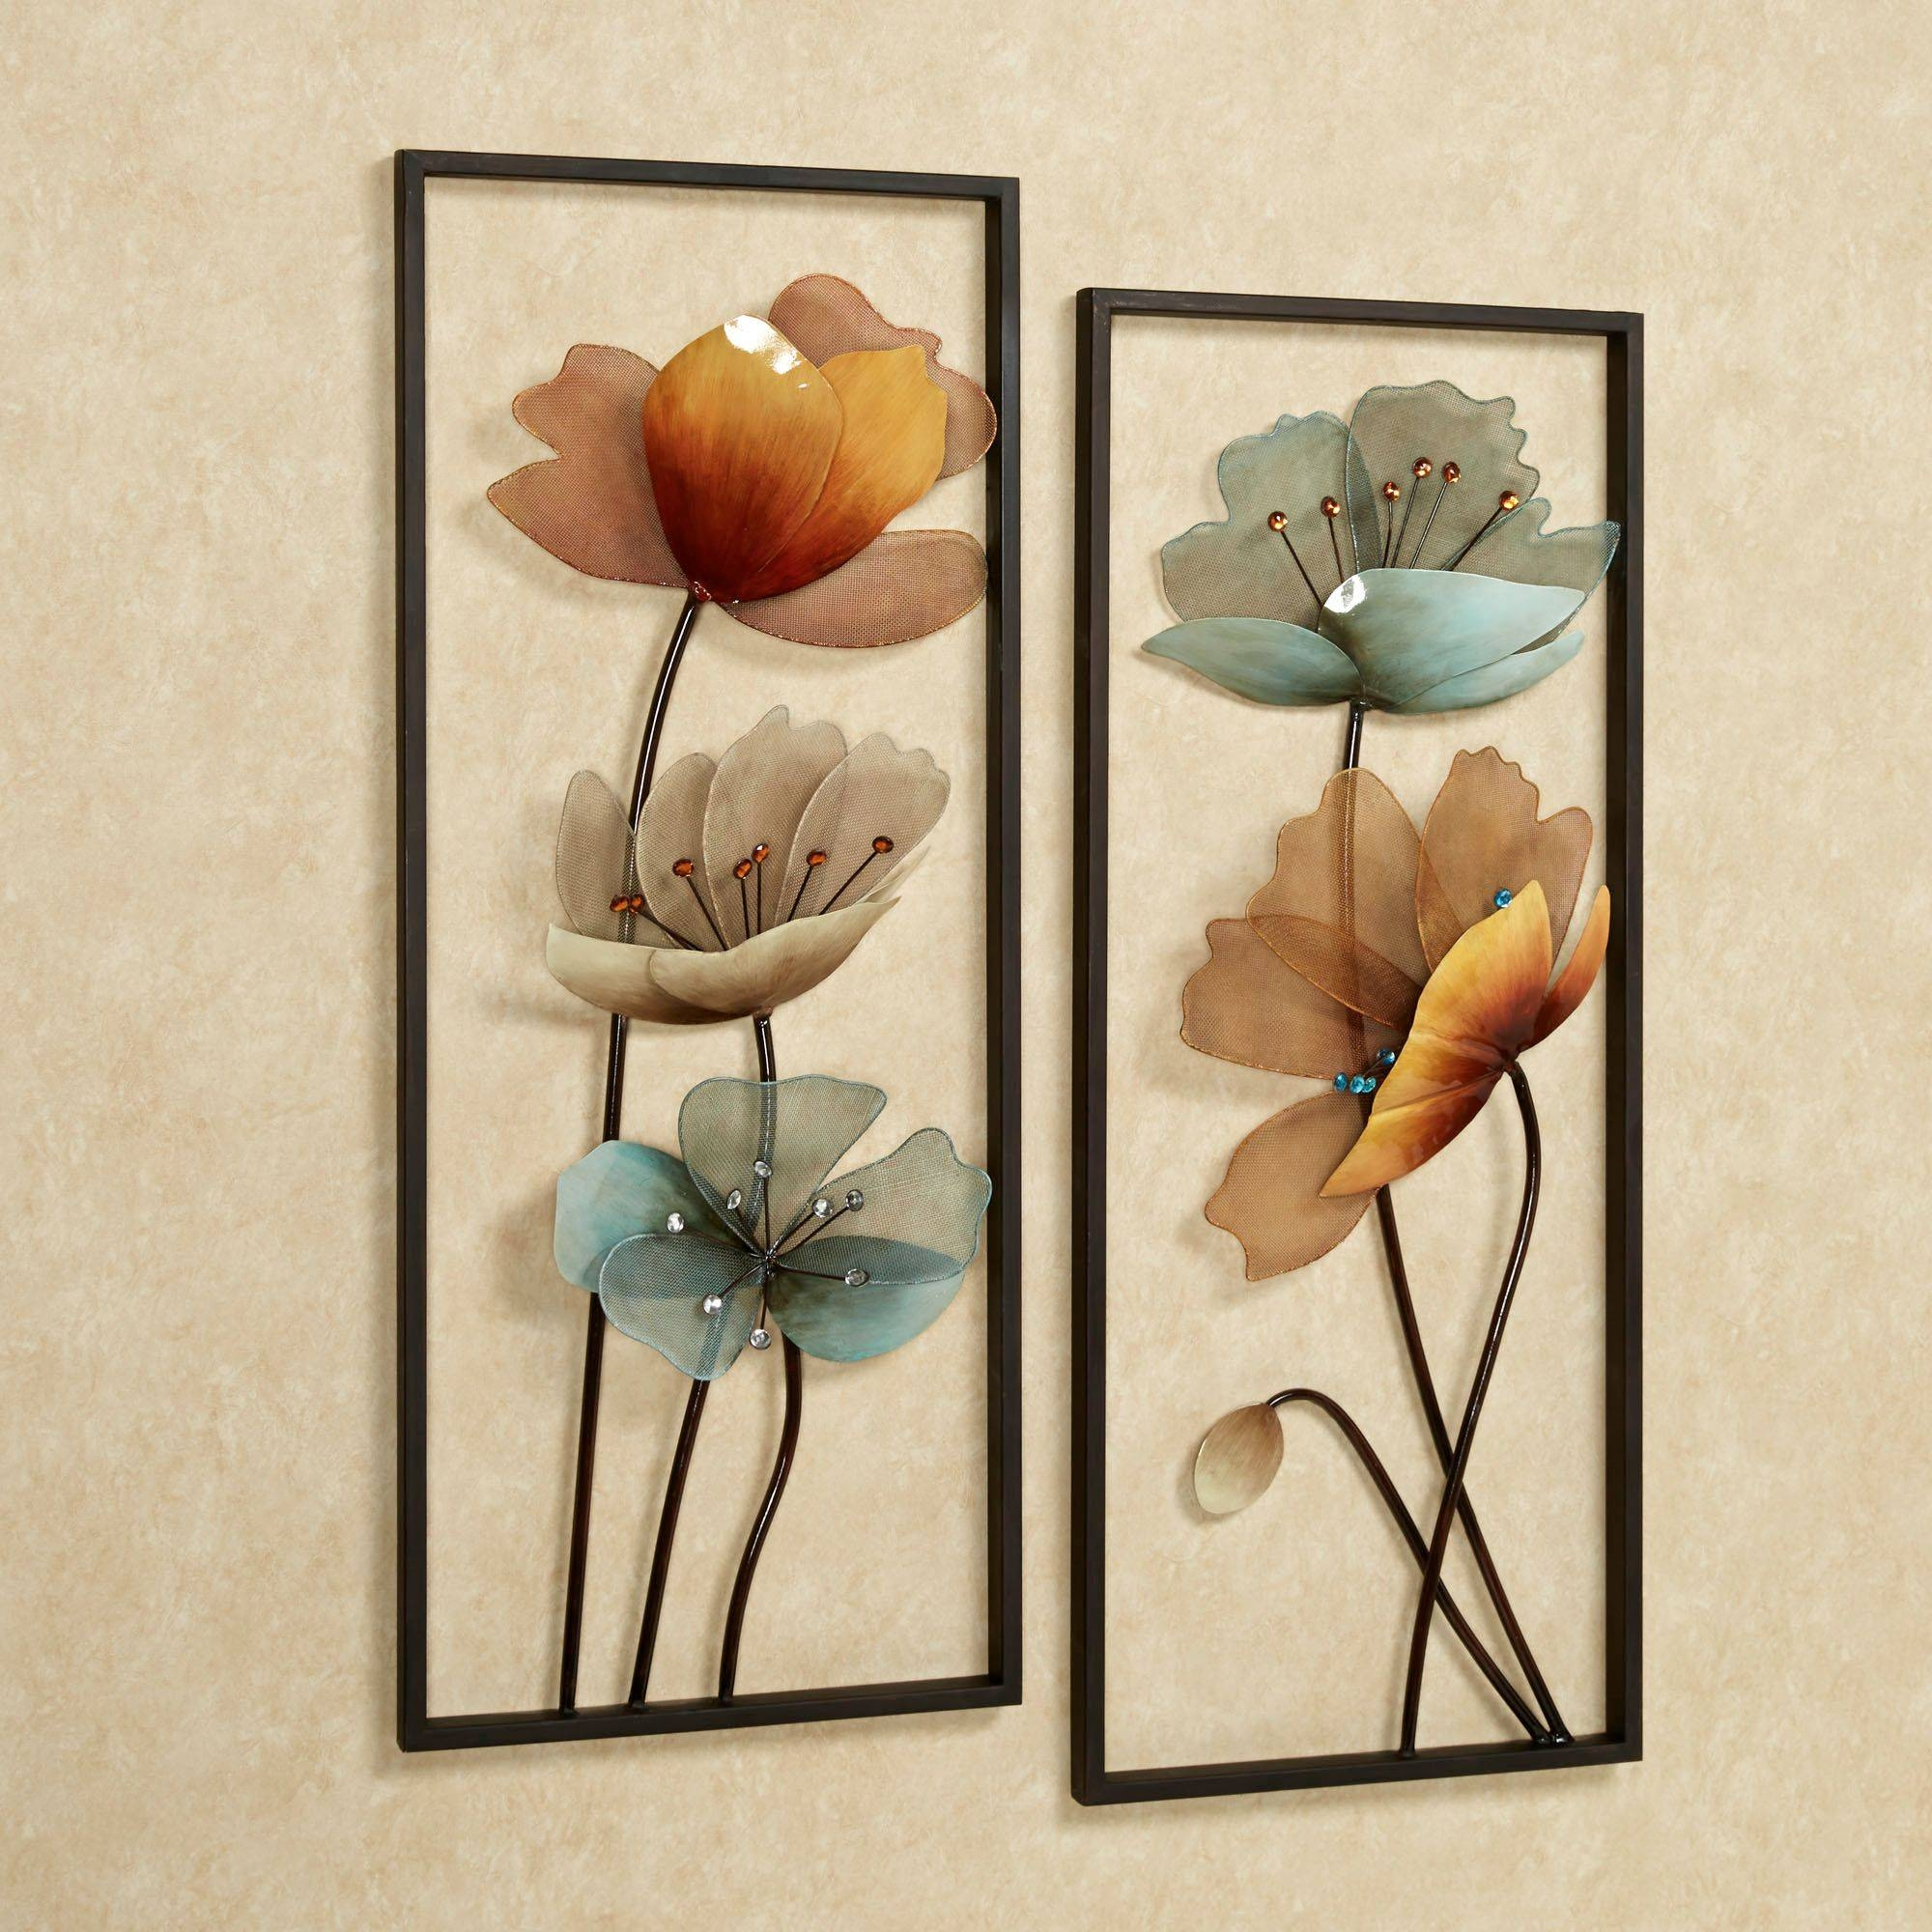 Splendid Wall Art Flowers Pictures Botanical Print Pressed Flowers Inside 2018 Botanical Metal Wall Art (View 15 of 25)